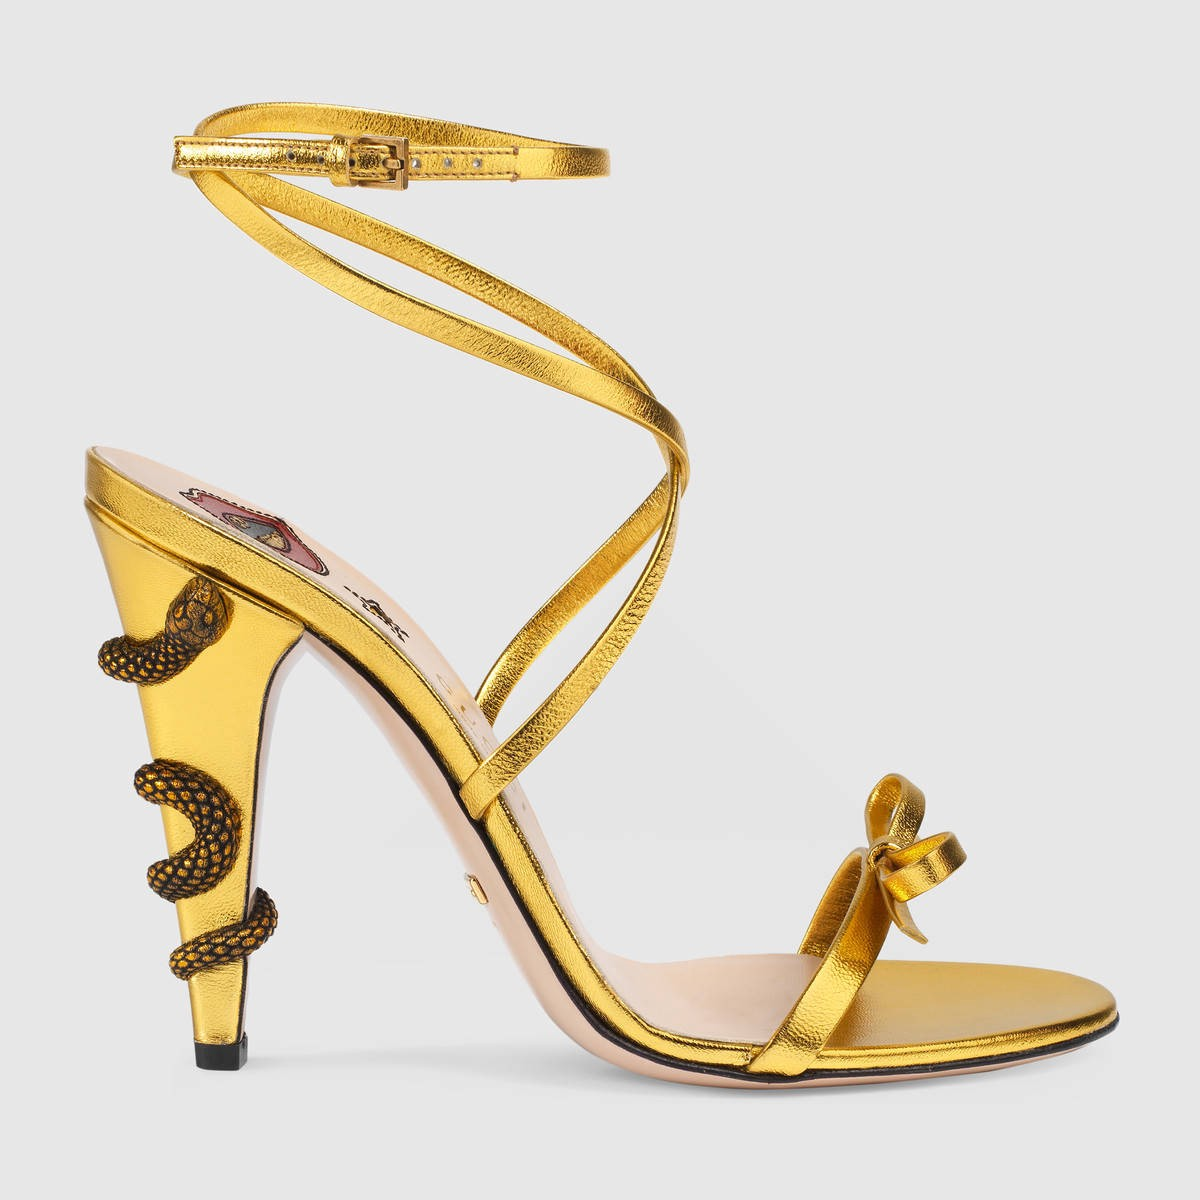 GUCCI Leather Crisscross Sandal - Gold Leather